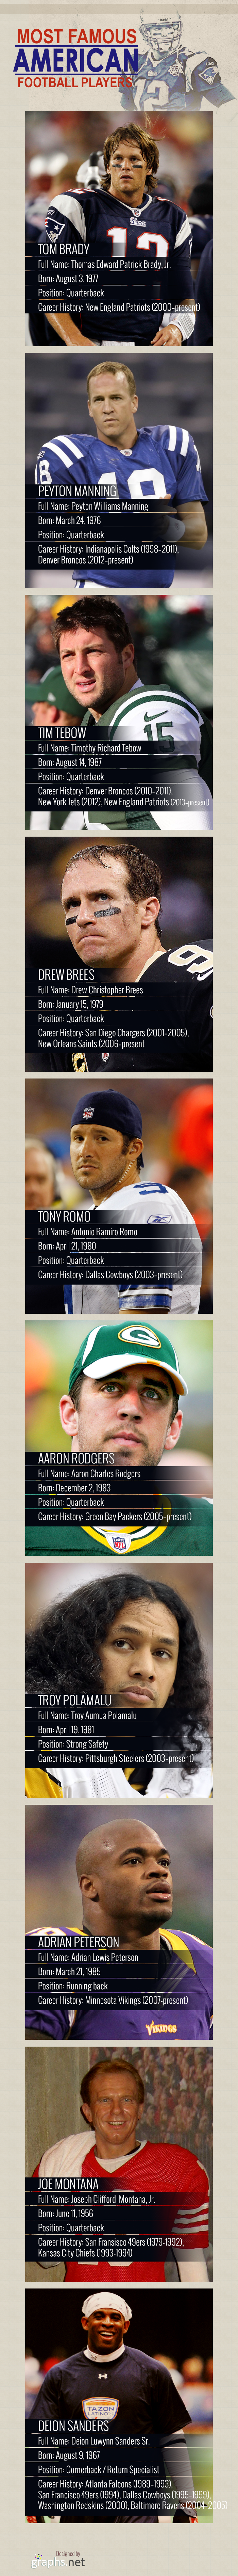 Most-Famous-American-football-players